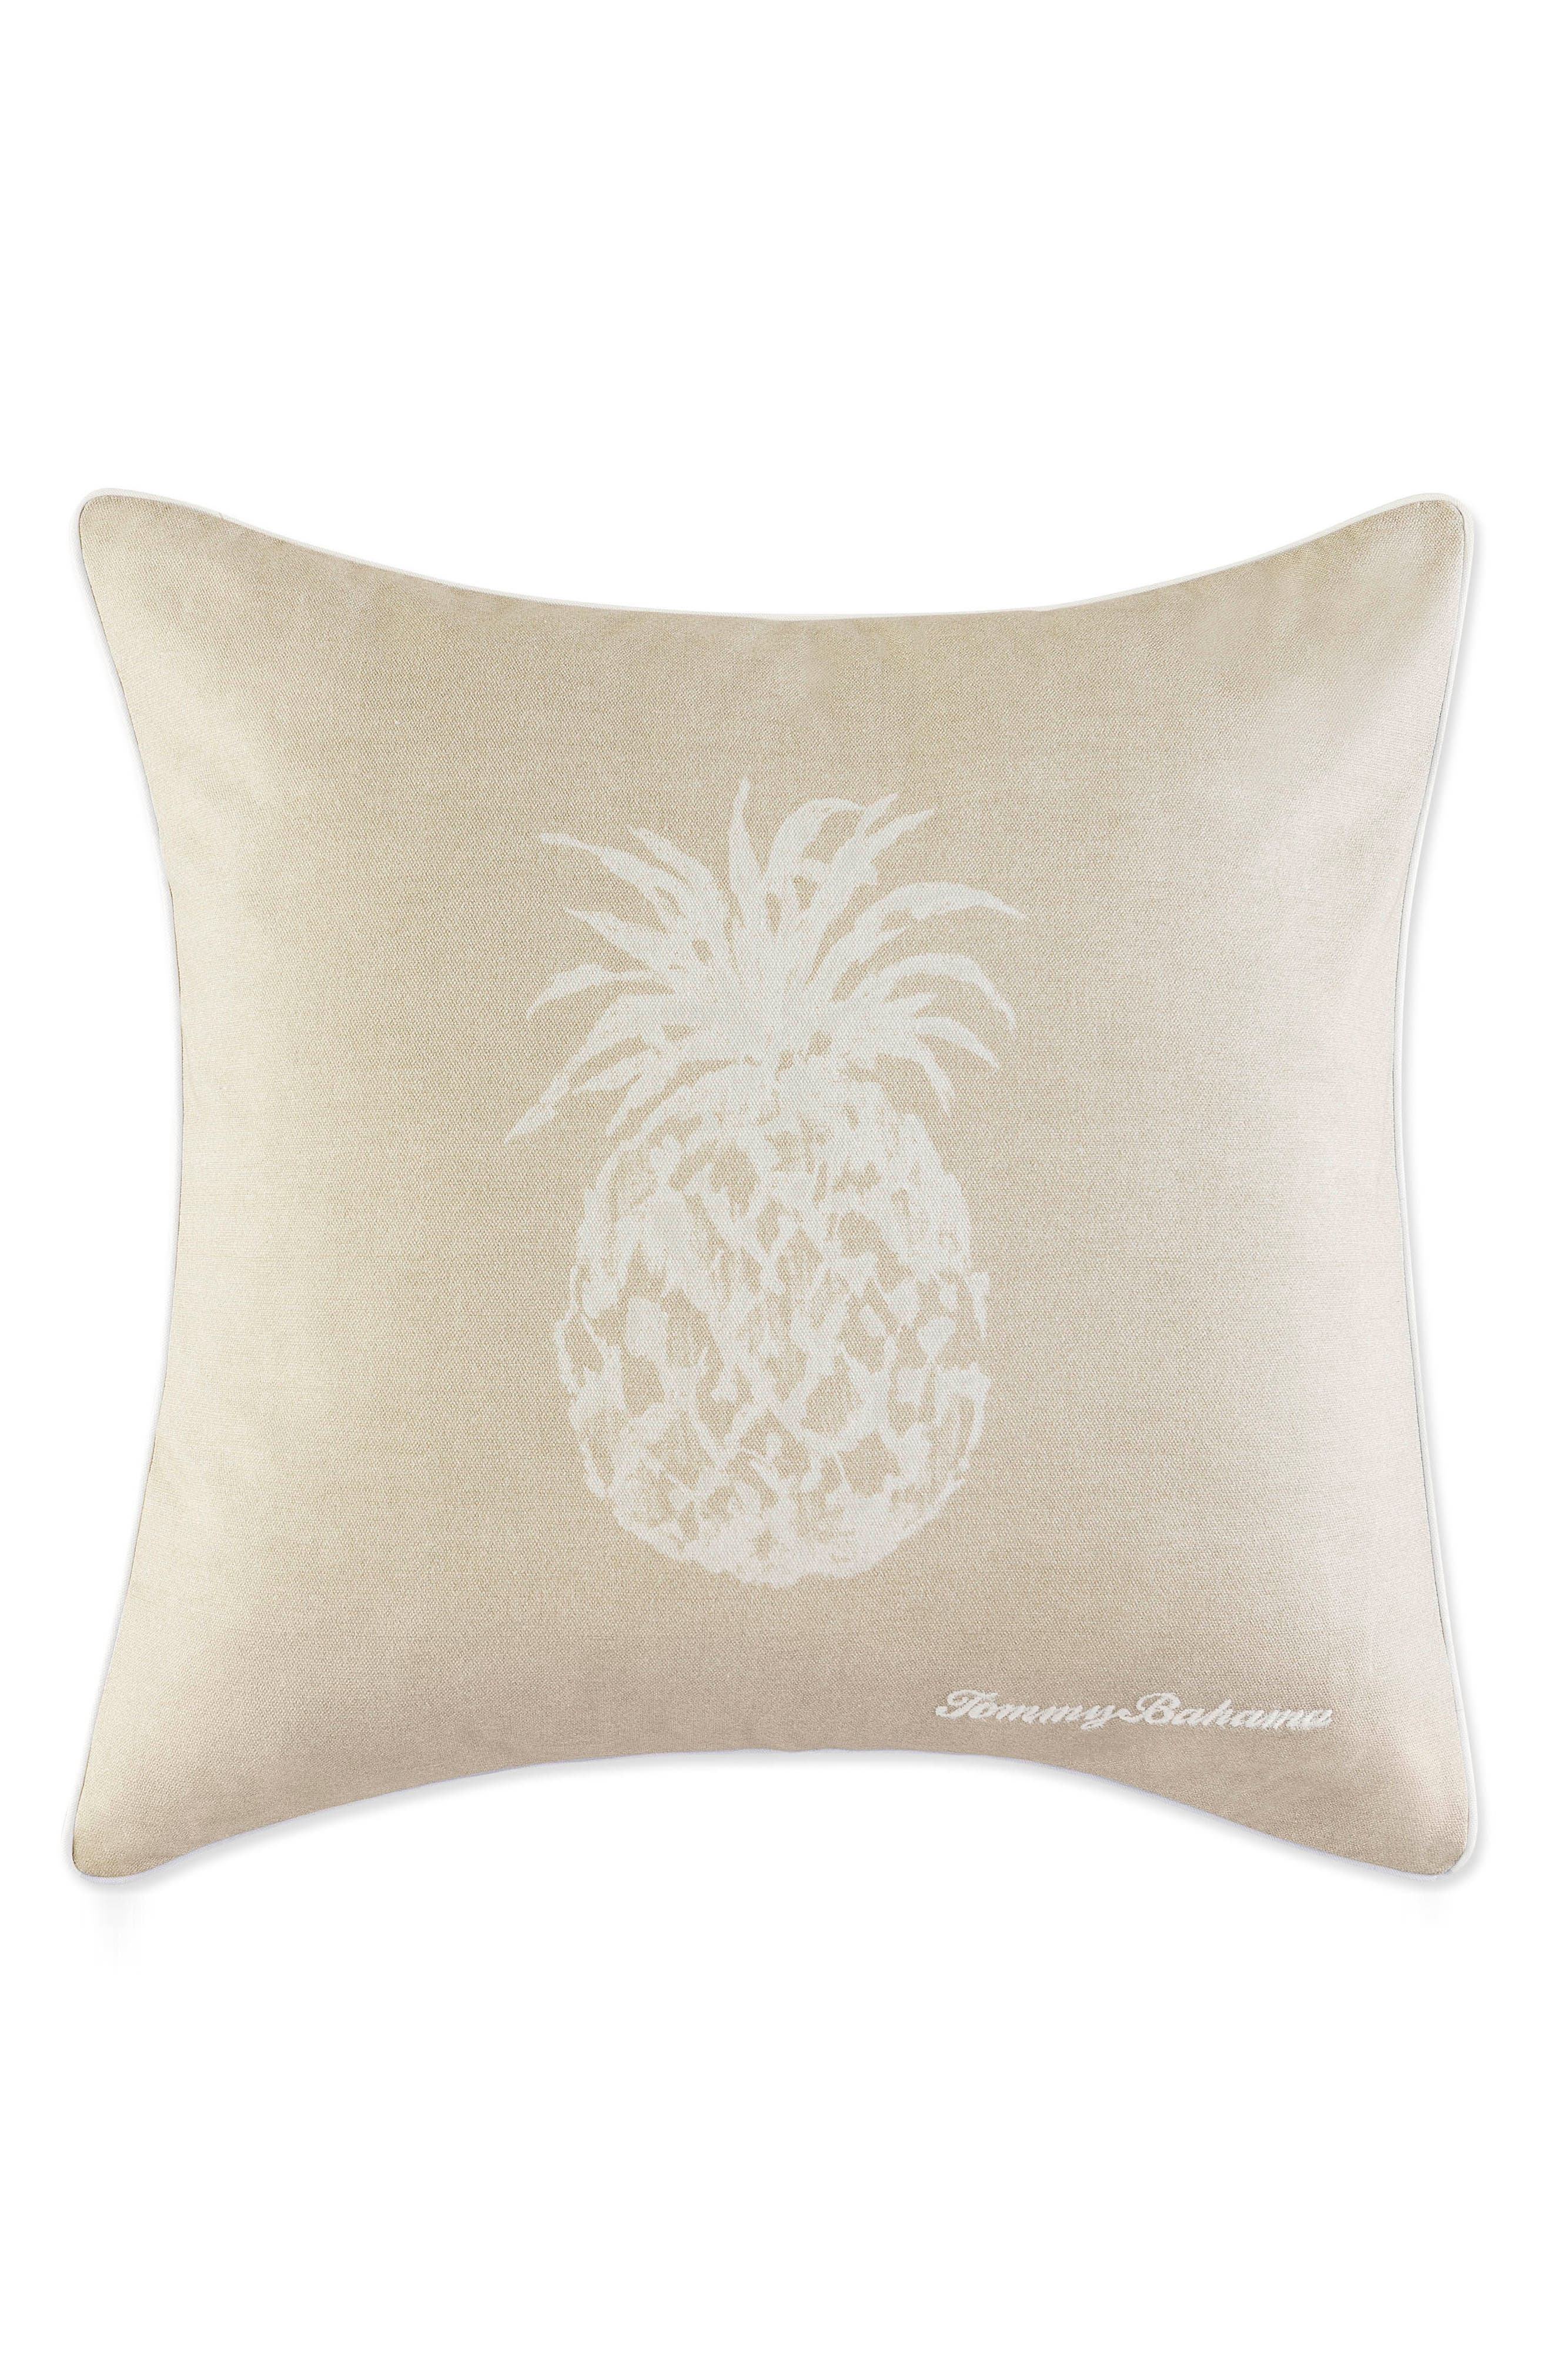 Alternate Image 1 Selected - Tommy Bahama Pineapple Accent Pillow